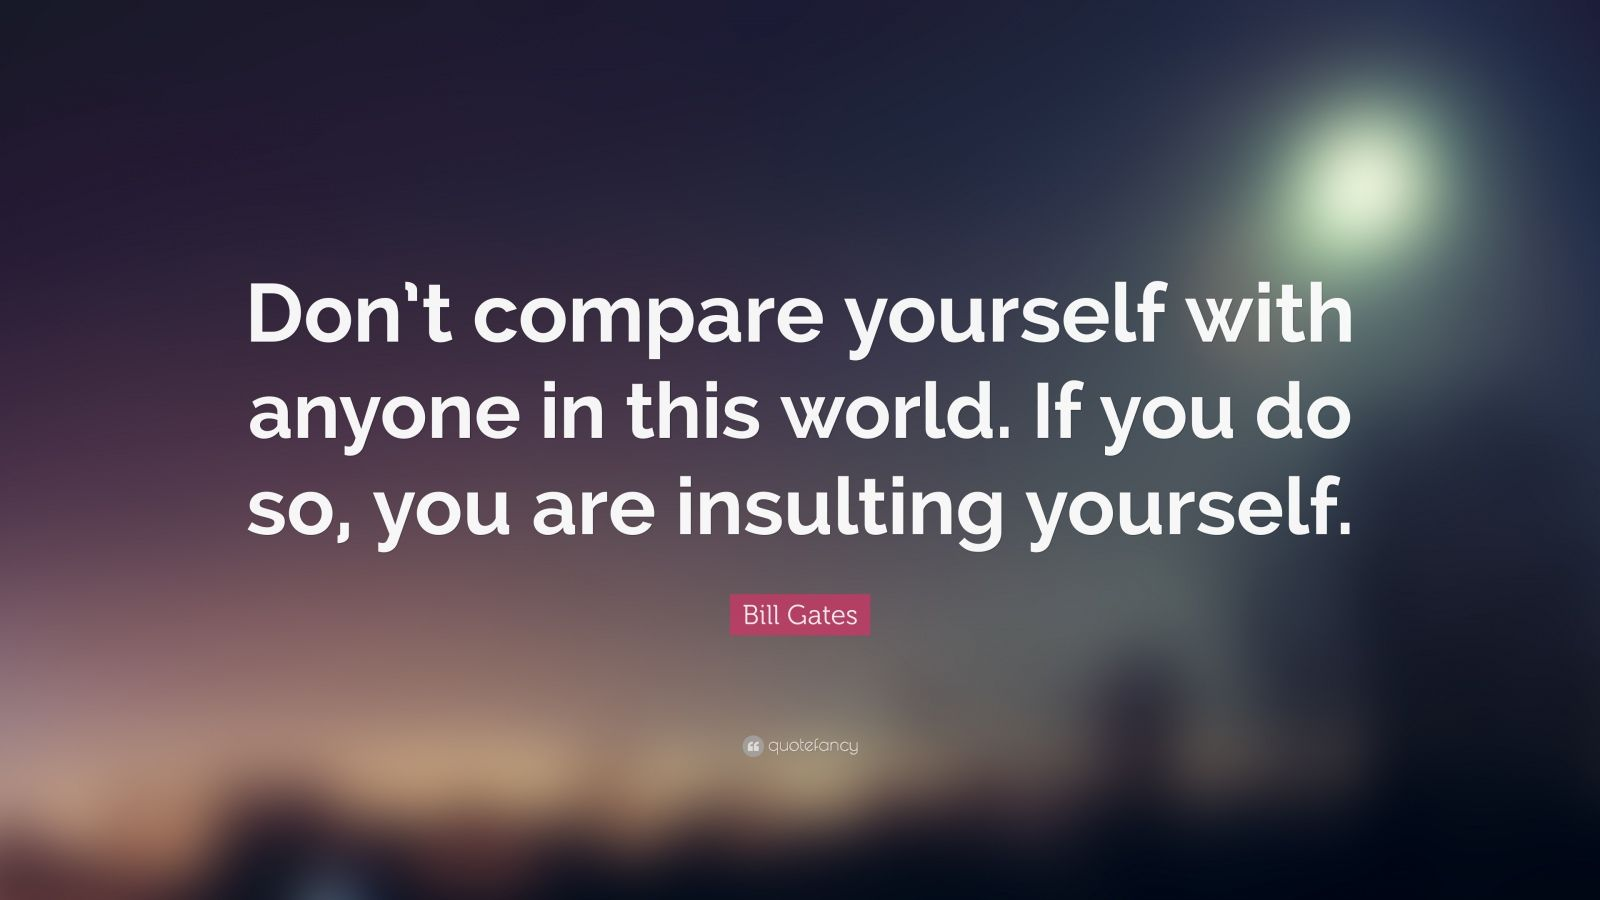 Bill Gates Don't Compare Yourself Quotes